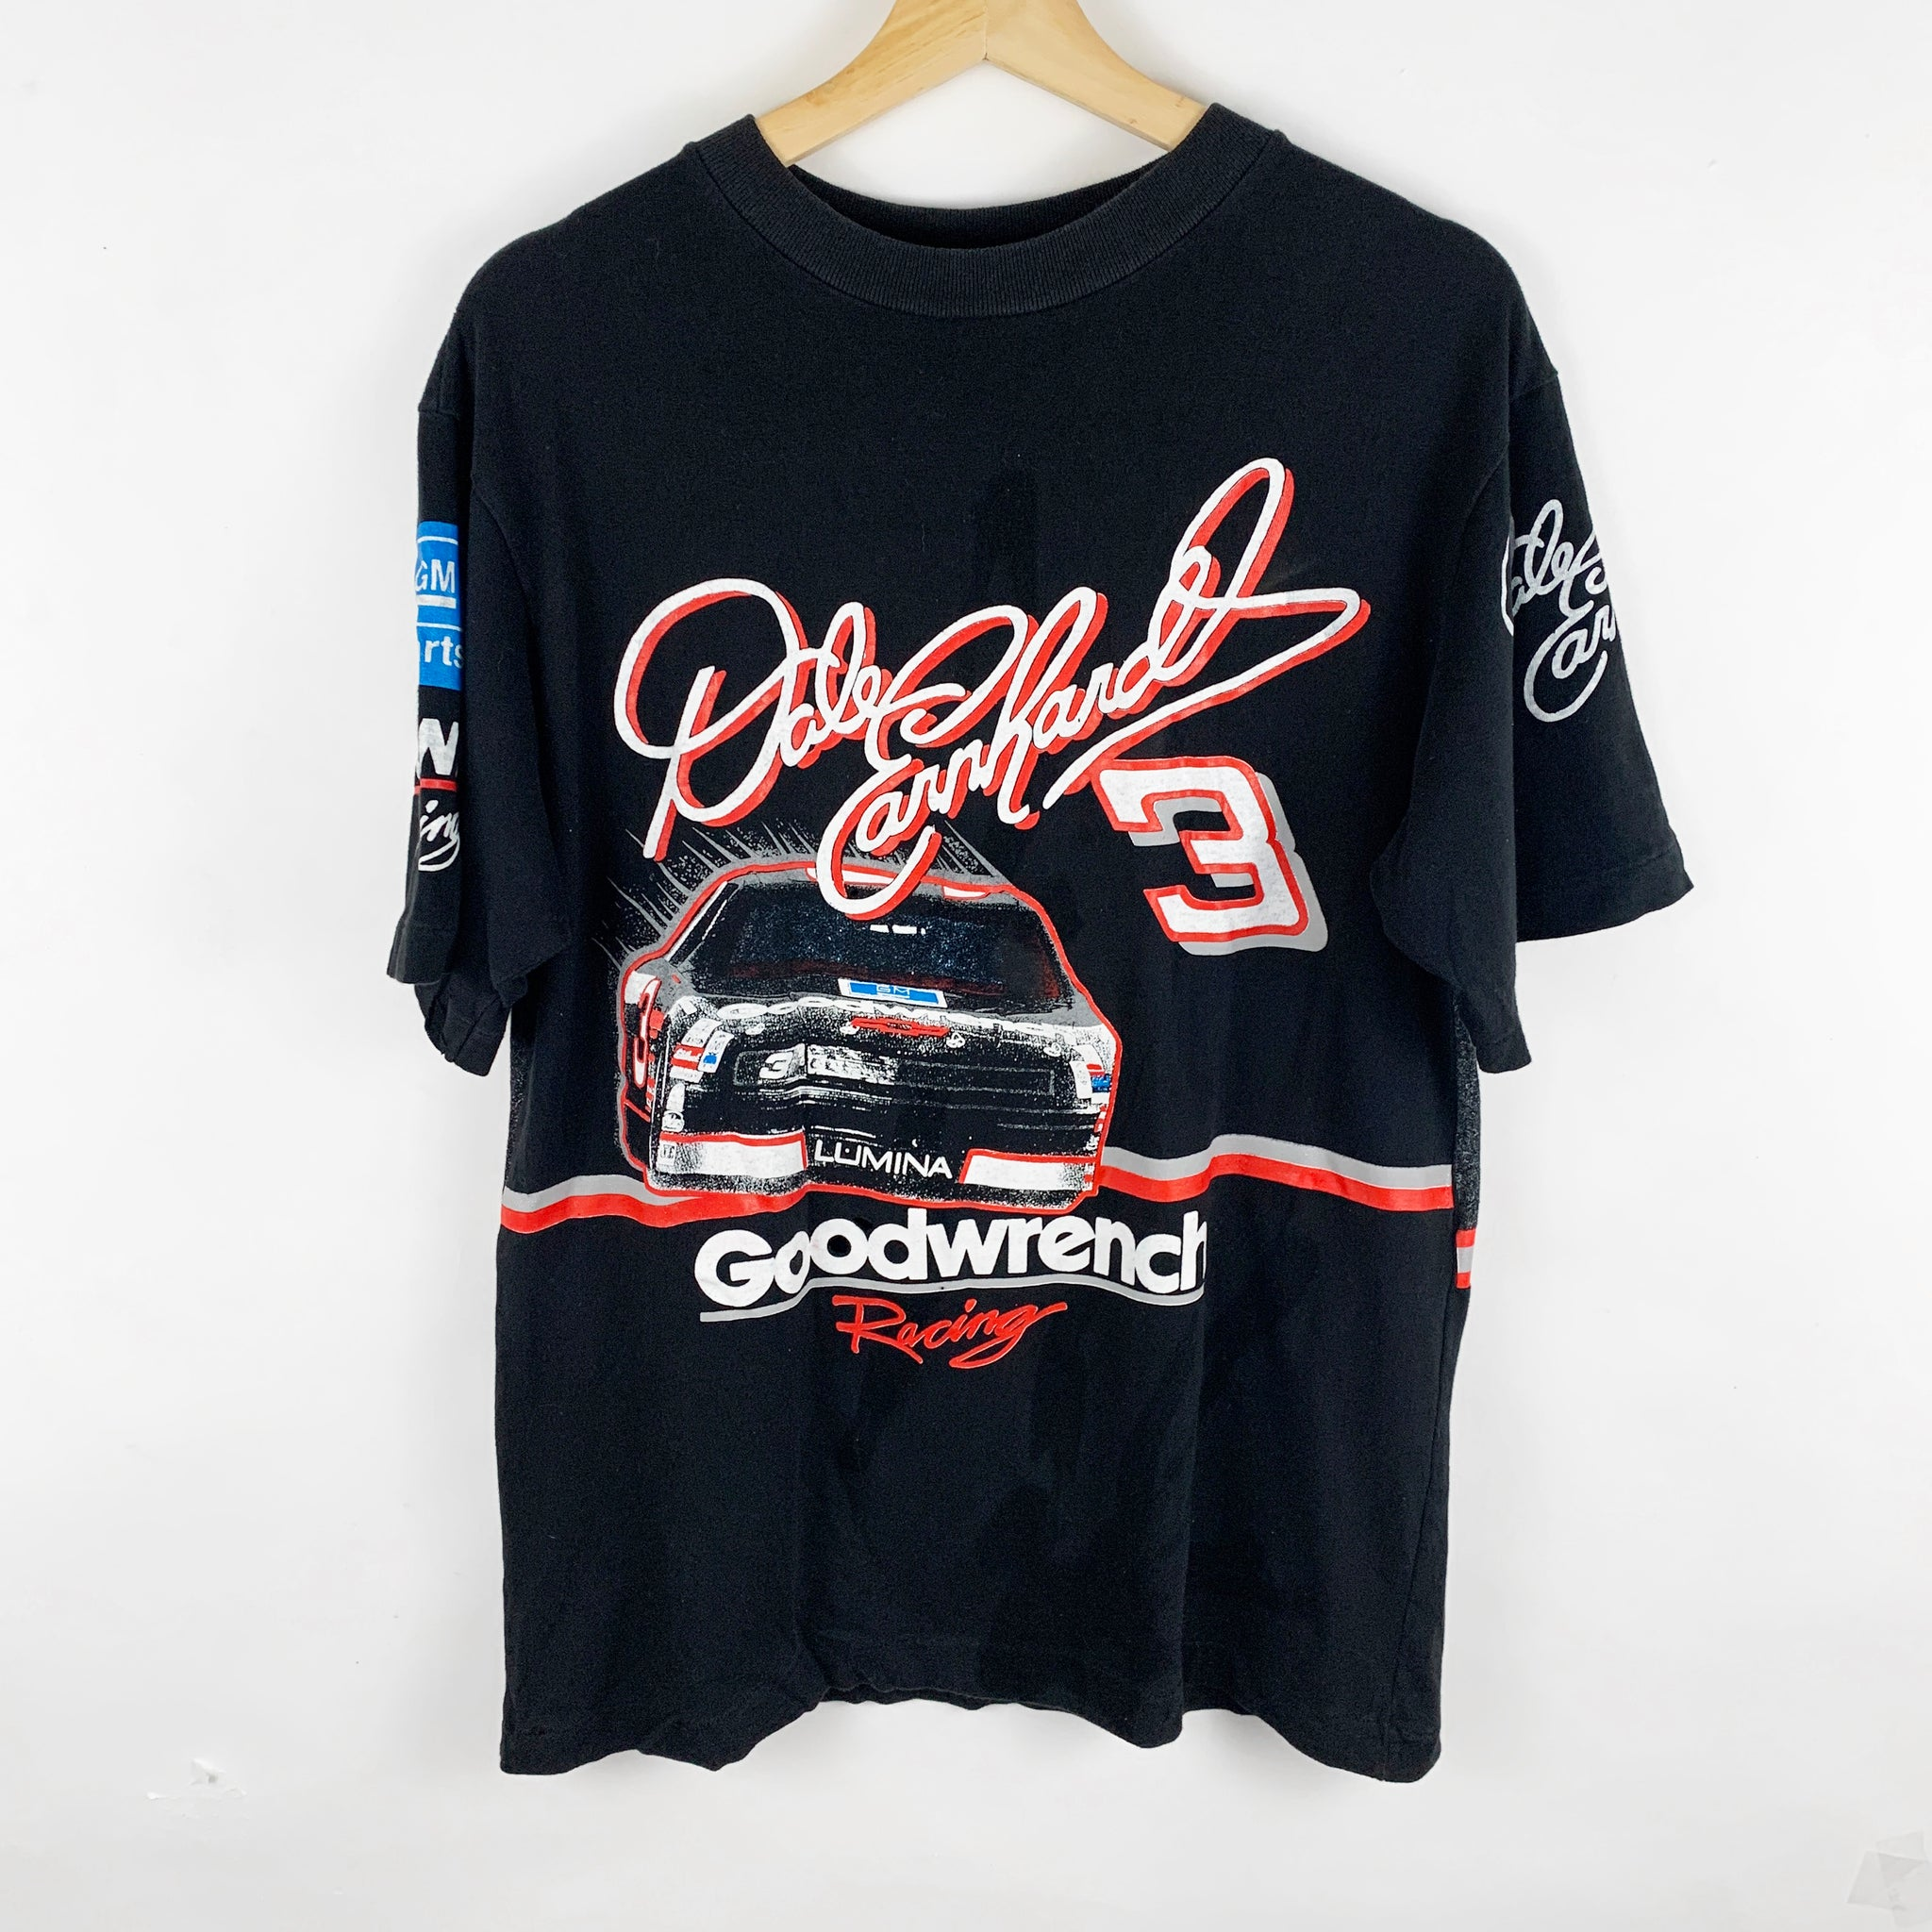 Vintage 90s Dale Earnhardt Goodwrench Racing All-Over-Print NASCAR Graphic Shirt